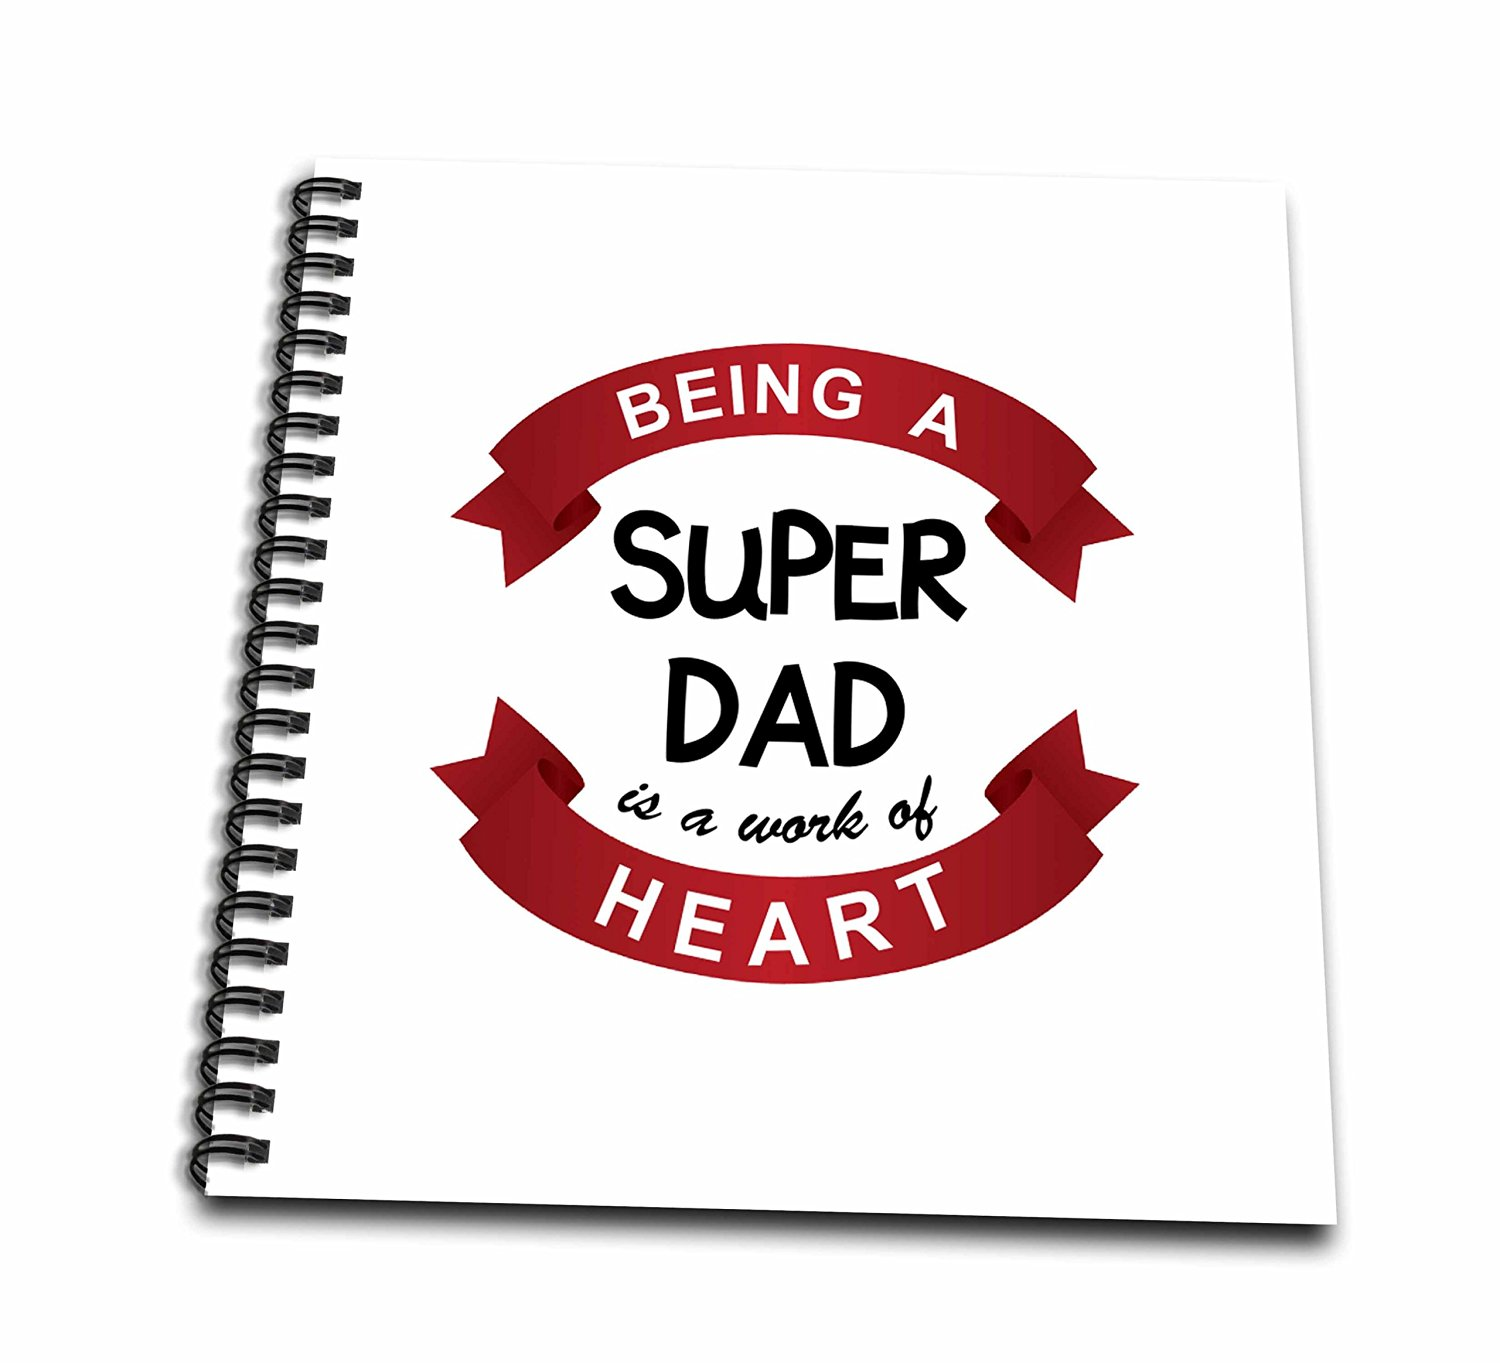 InspirationzStore Love series - Being a Super Dad is a work of Heart - red fathers day love quote gift - Memory Book 12 x 12 inch (db_183895_2)